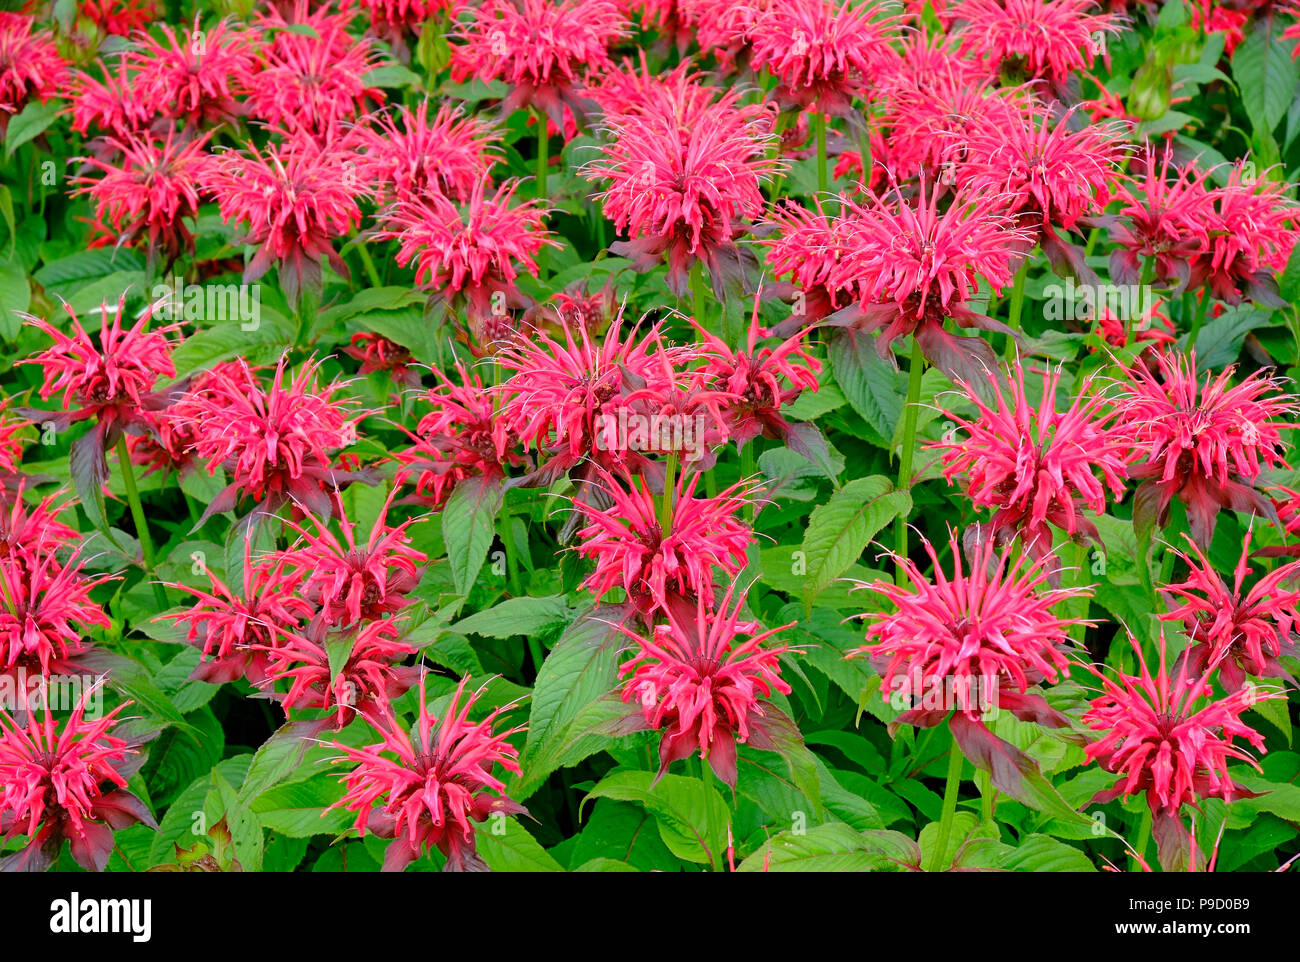 flowering red bergamot plant in english garden Stock Photo